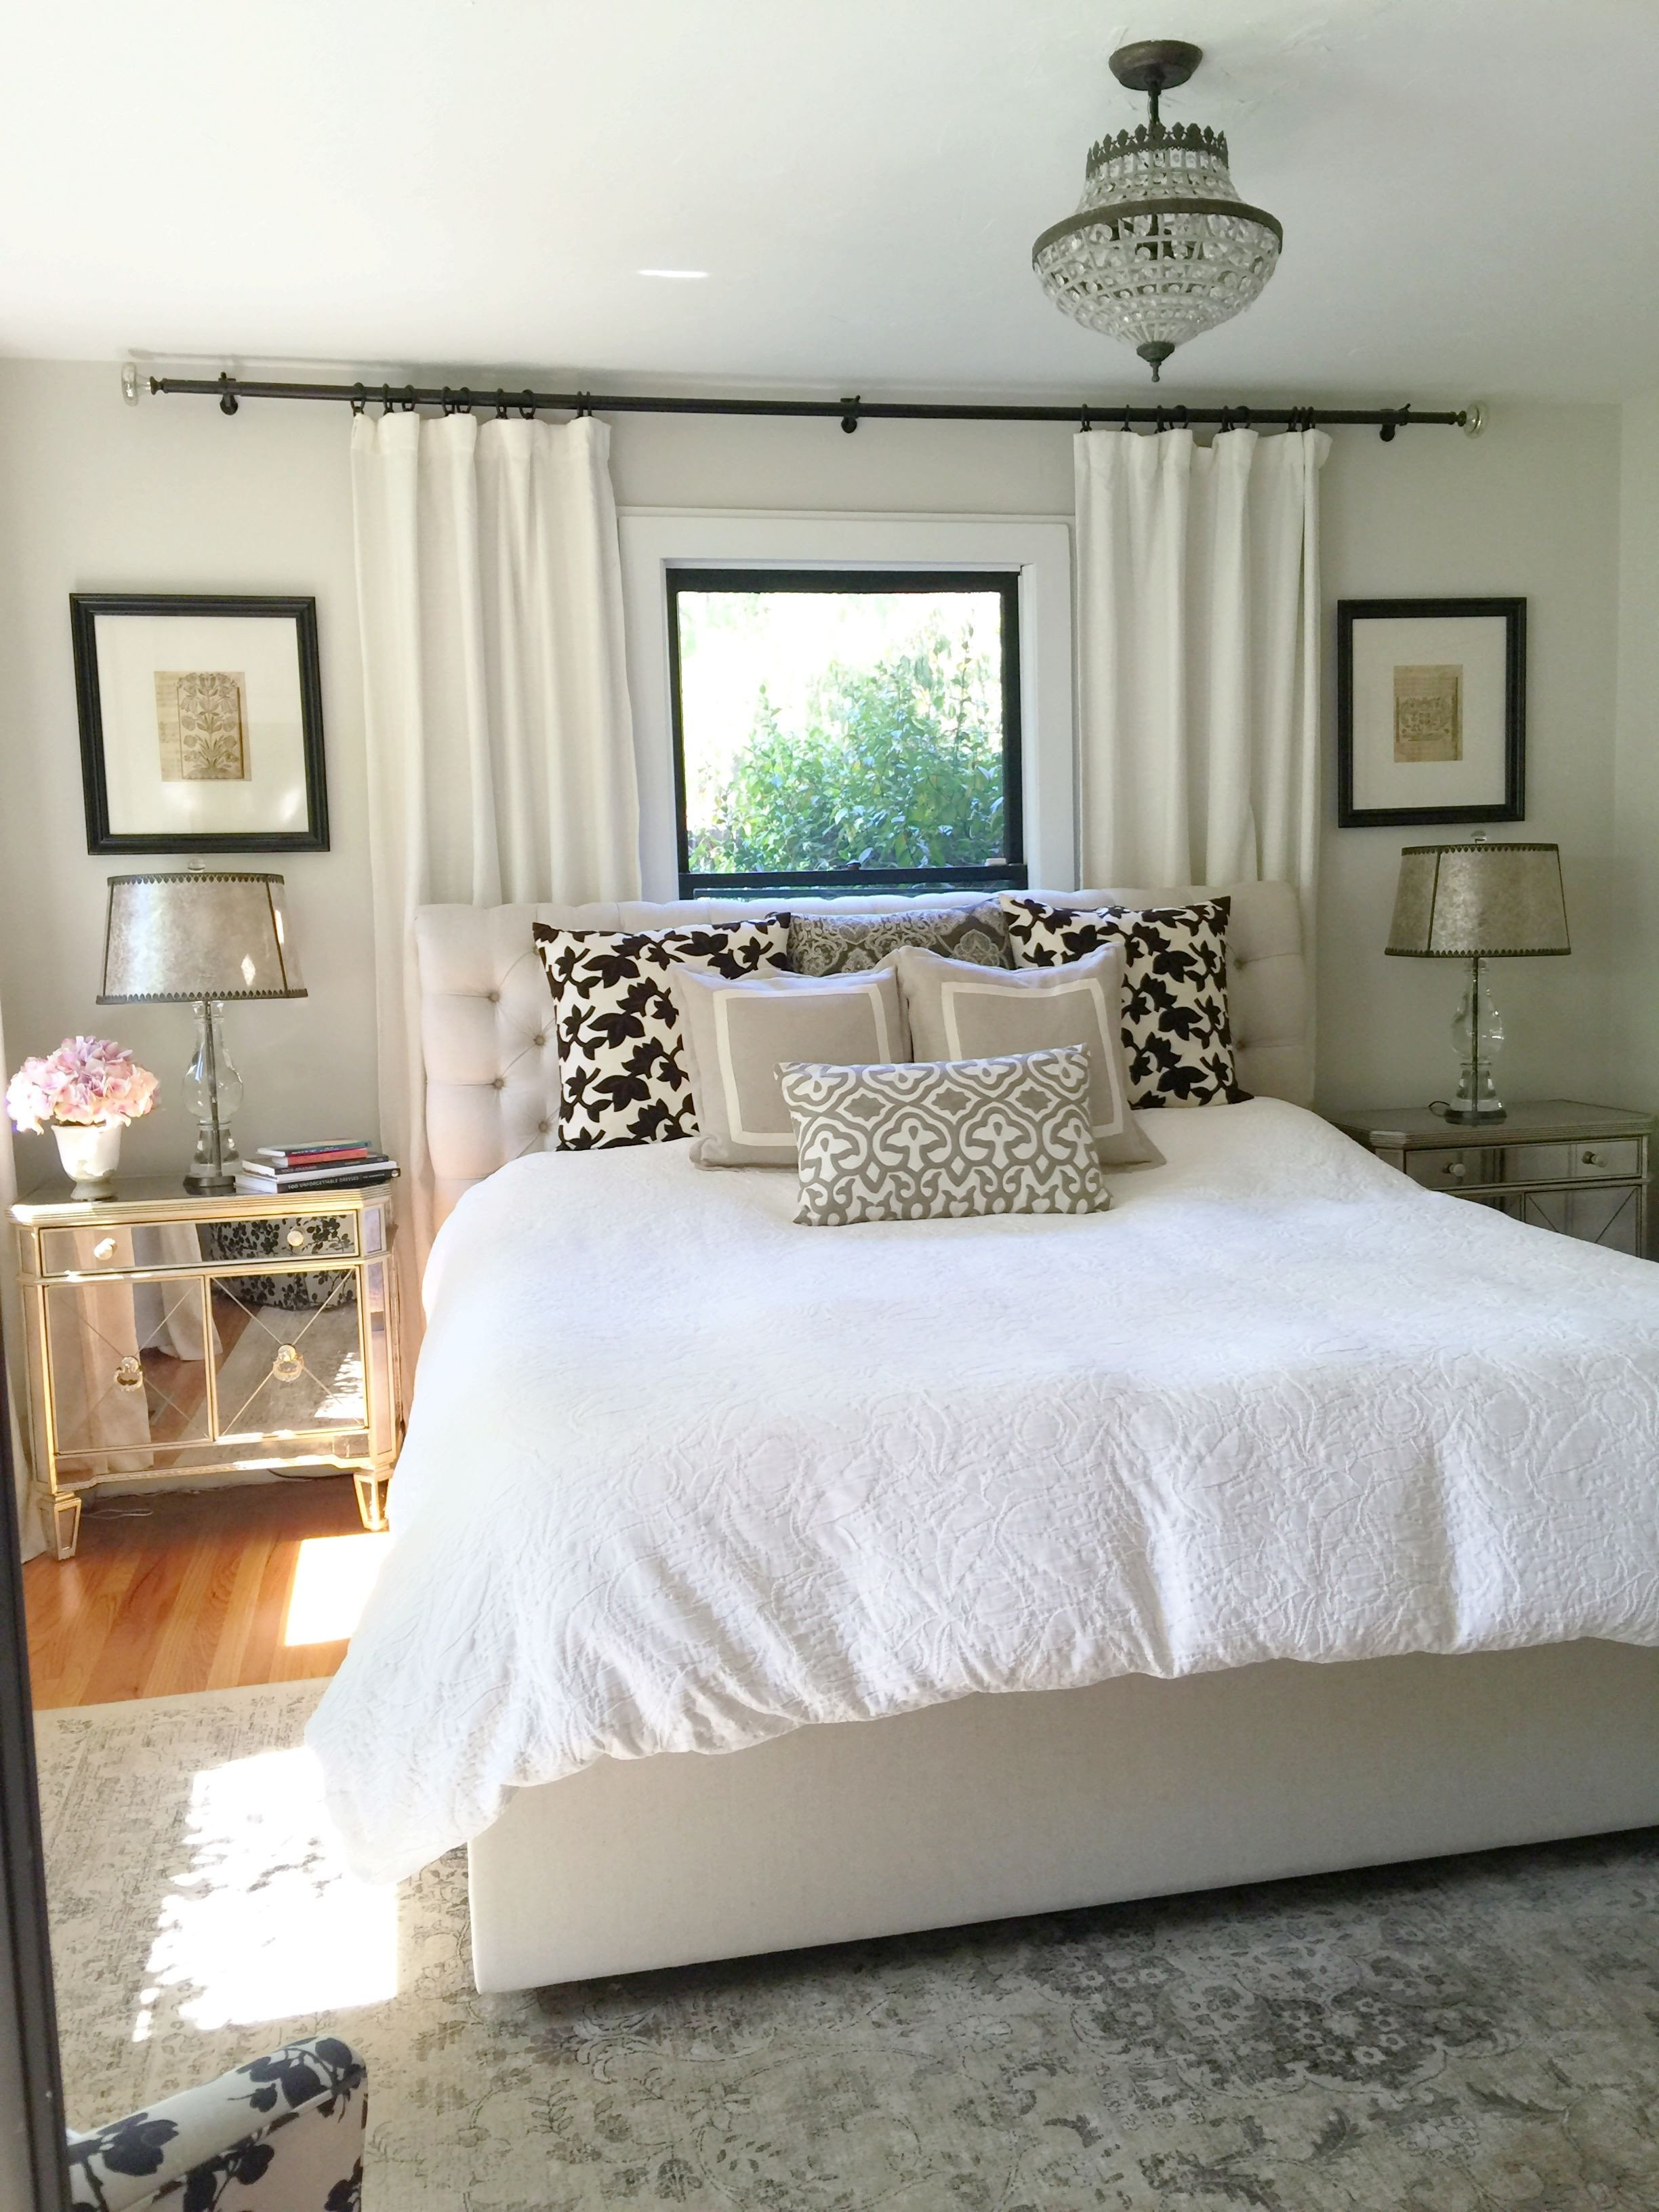 Curtains for Bedroom Windows with Designs Beautiful Neutral Bedroom Window Behind Bed Bedroom Window